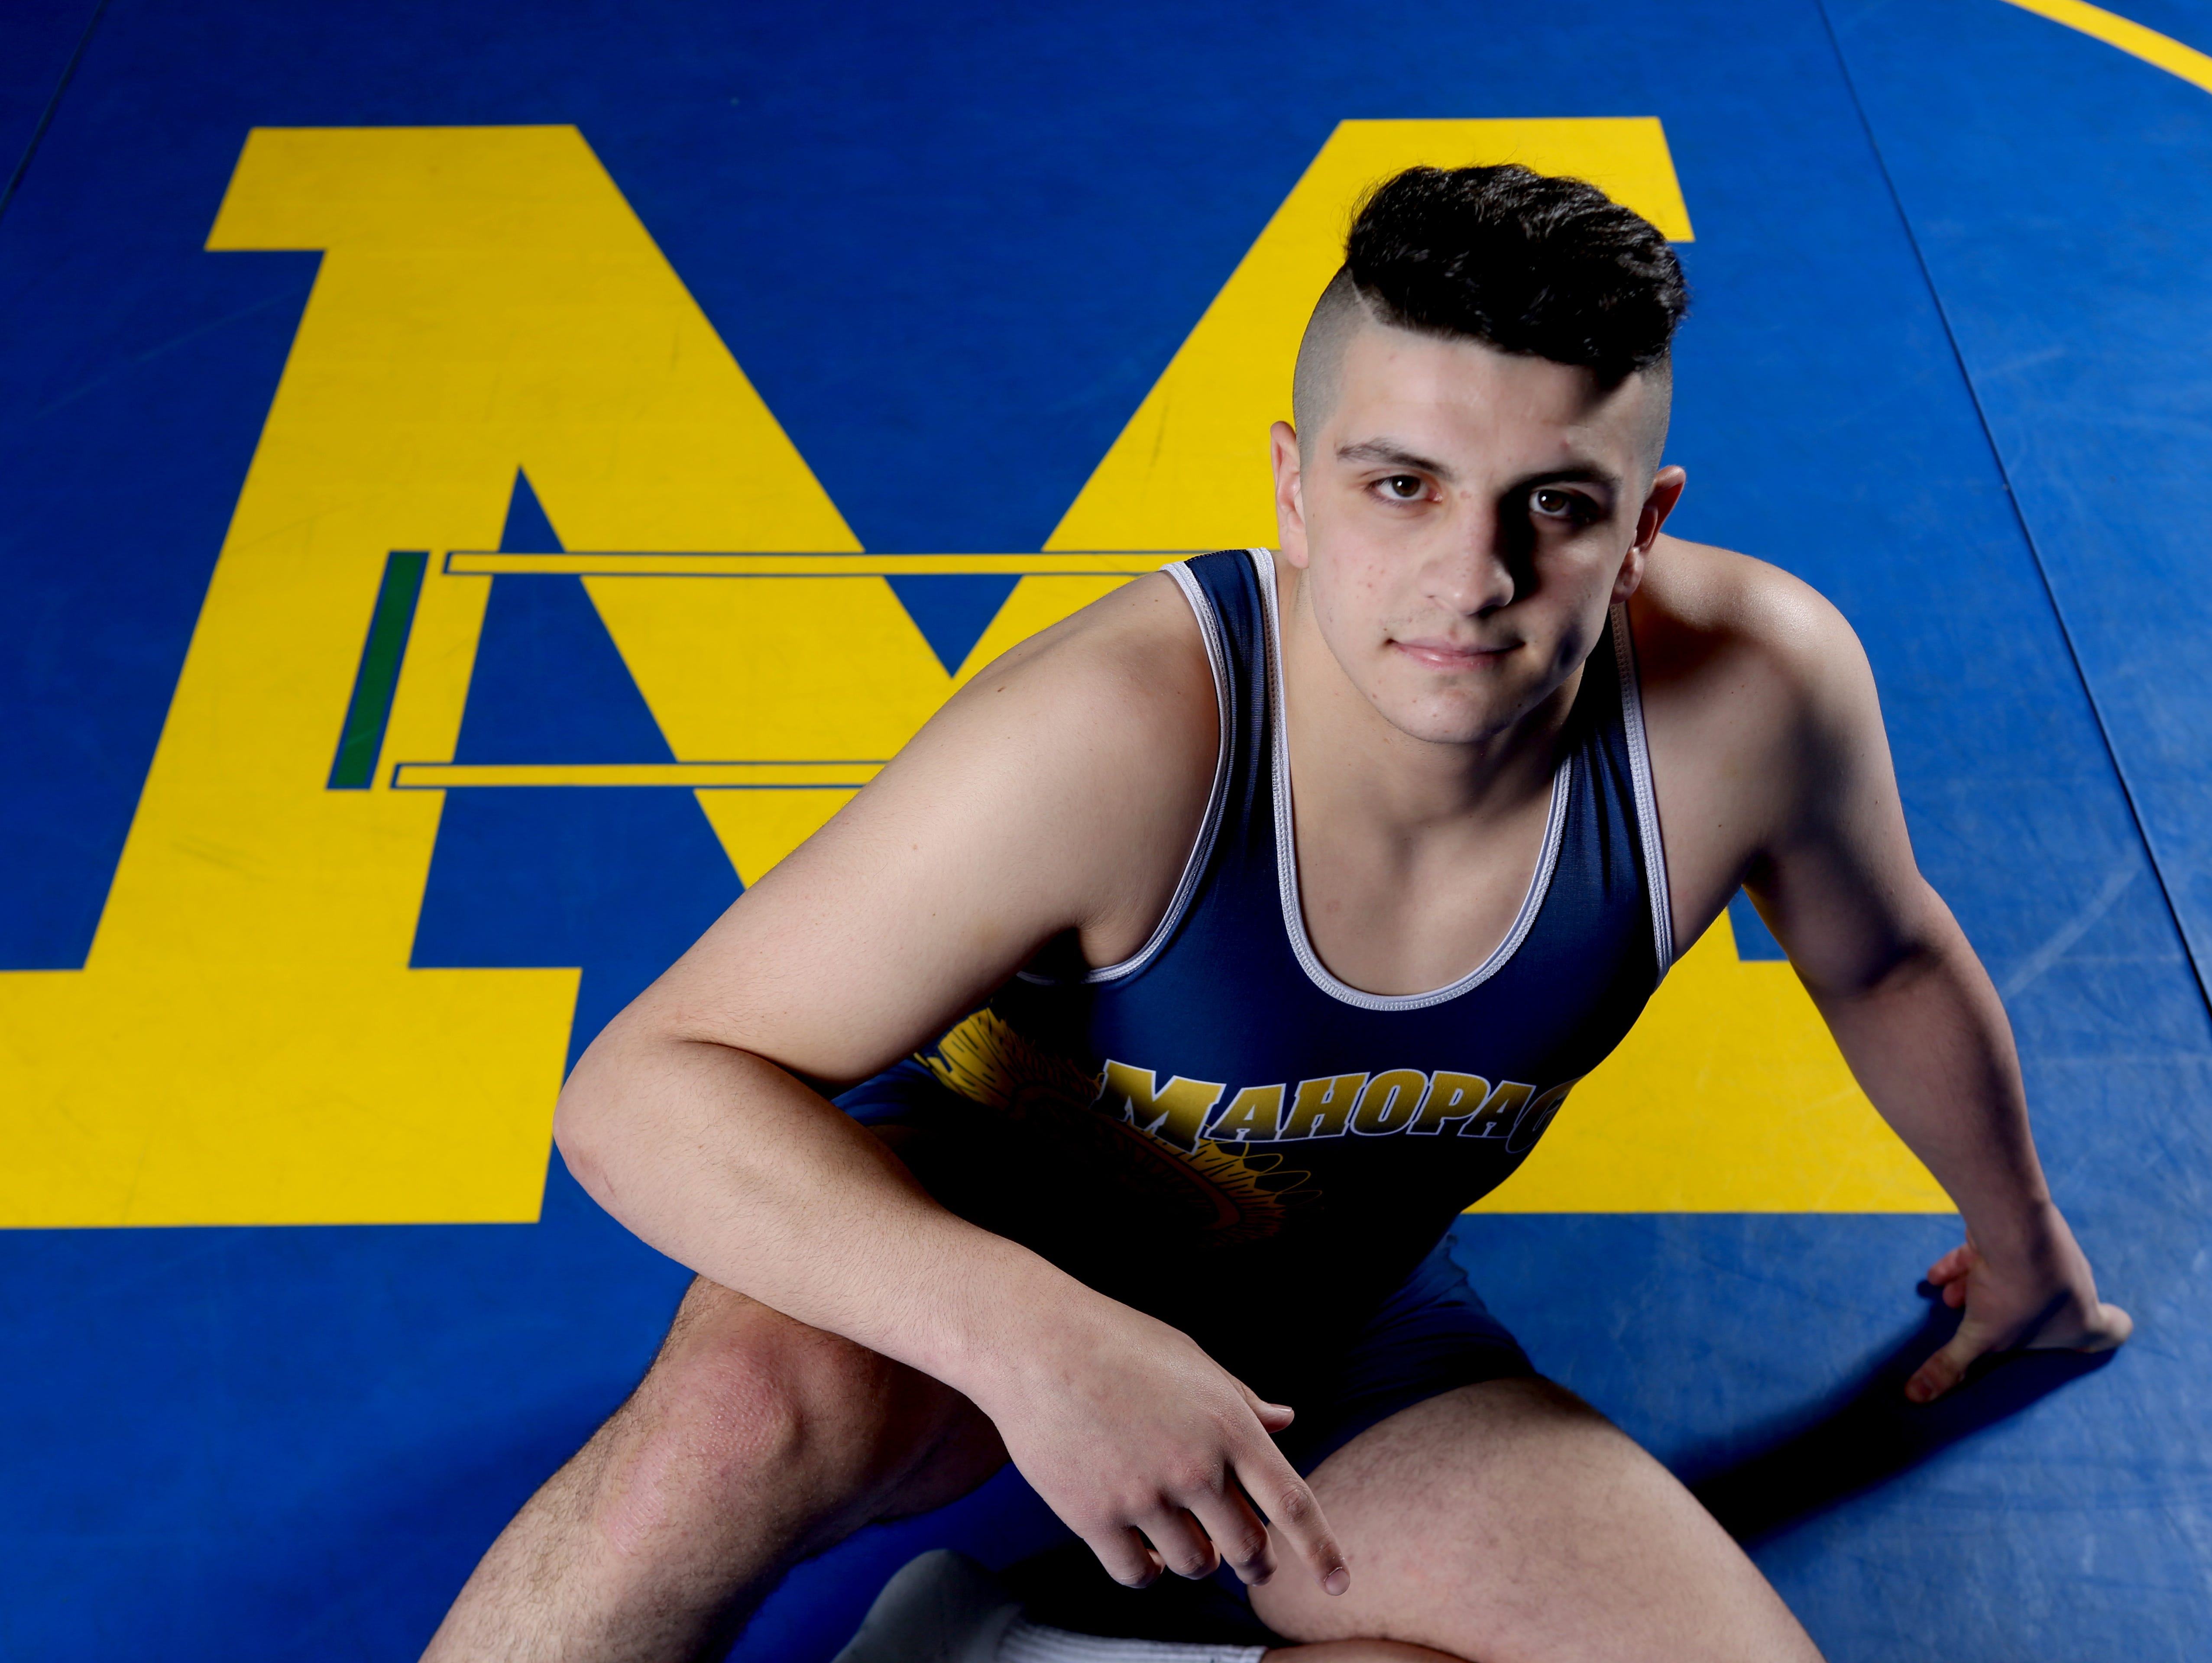 Mahopac senior Mike DiNardo, photographed April 7, 2016, is the Westchester/Putnam wrestler of the year.